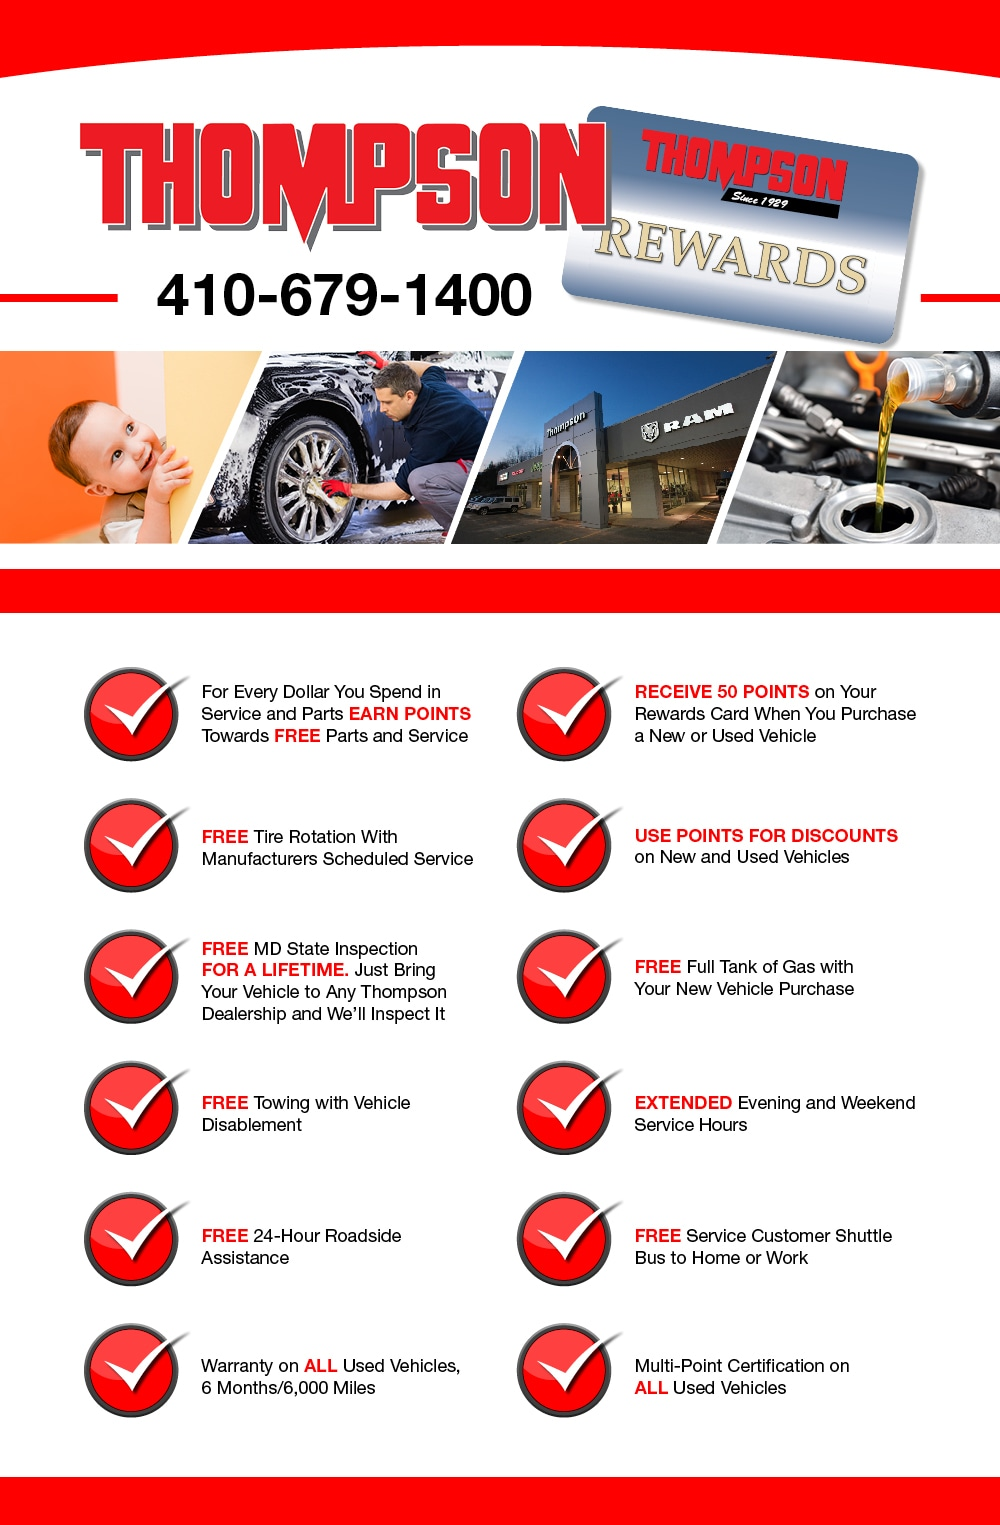 Why Buy from Thompson Chrysler Dodge Jeep Ram in Edgewood, MD